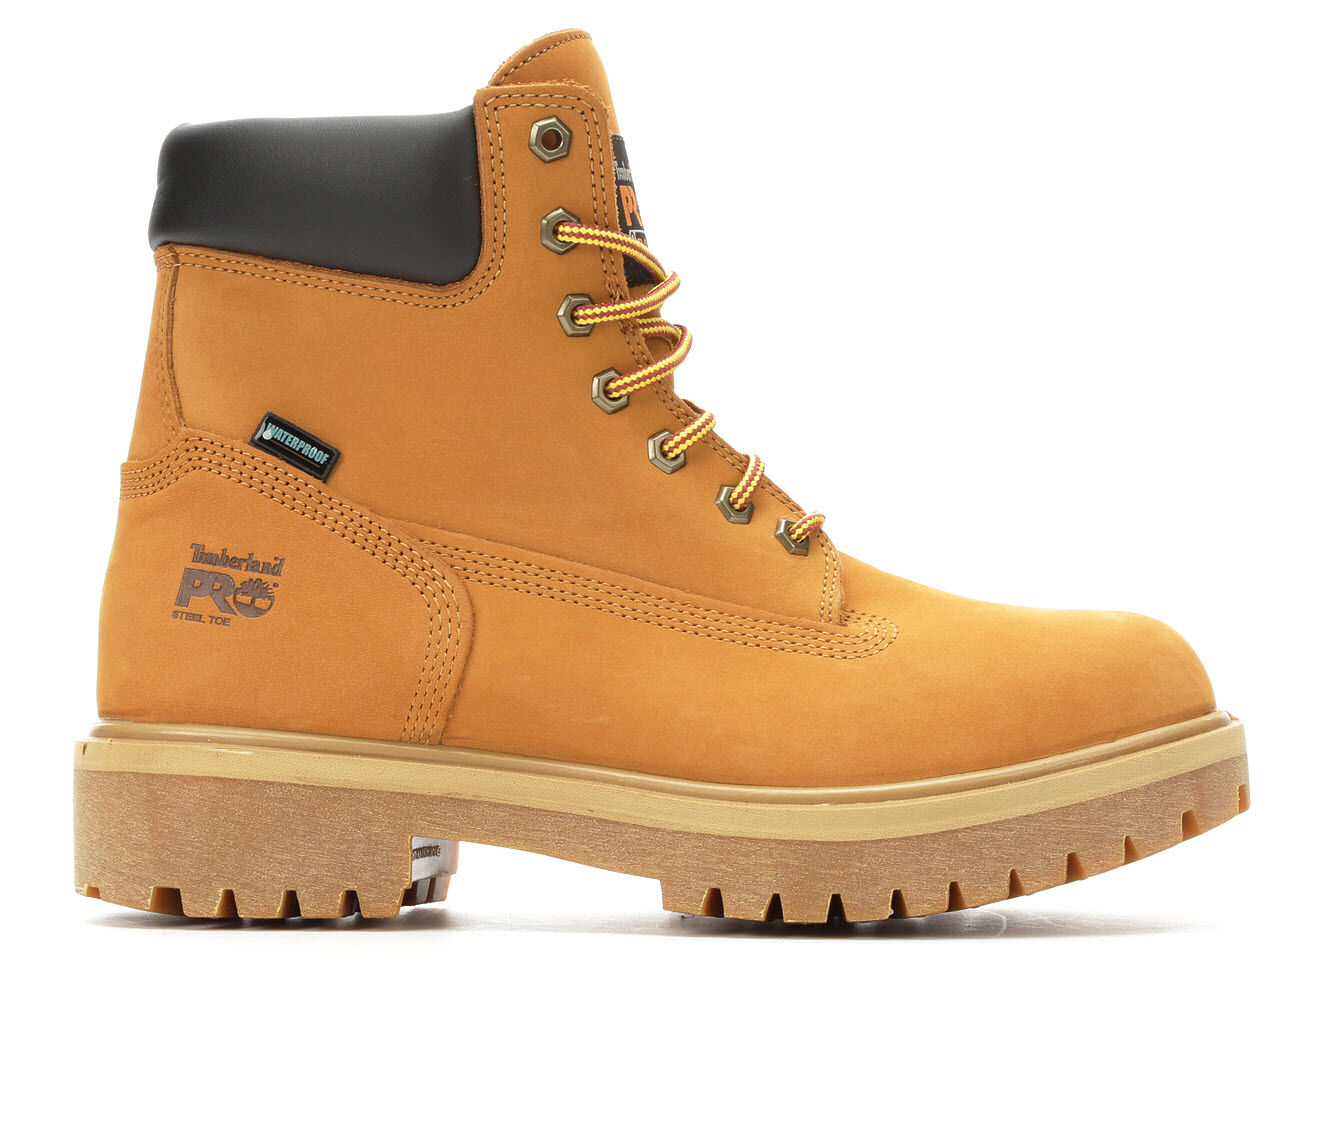 Men's Timberland Pro Direct Attach 65016 Steel Toe Waterproof Work Boots Wheat